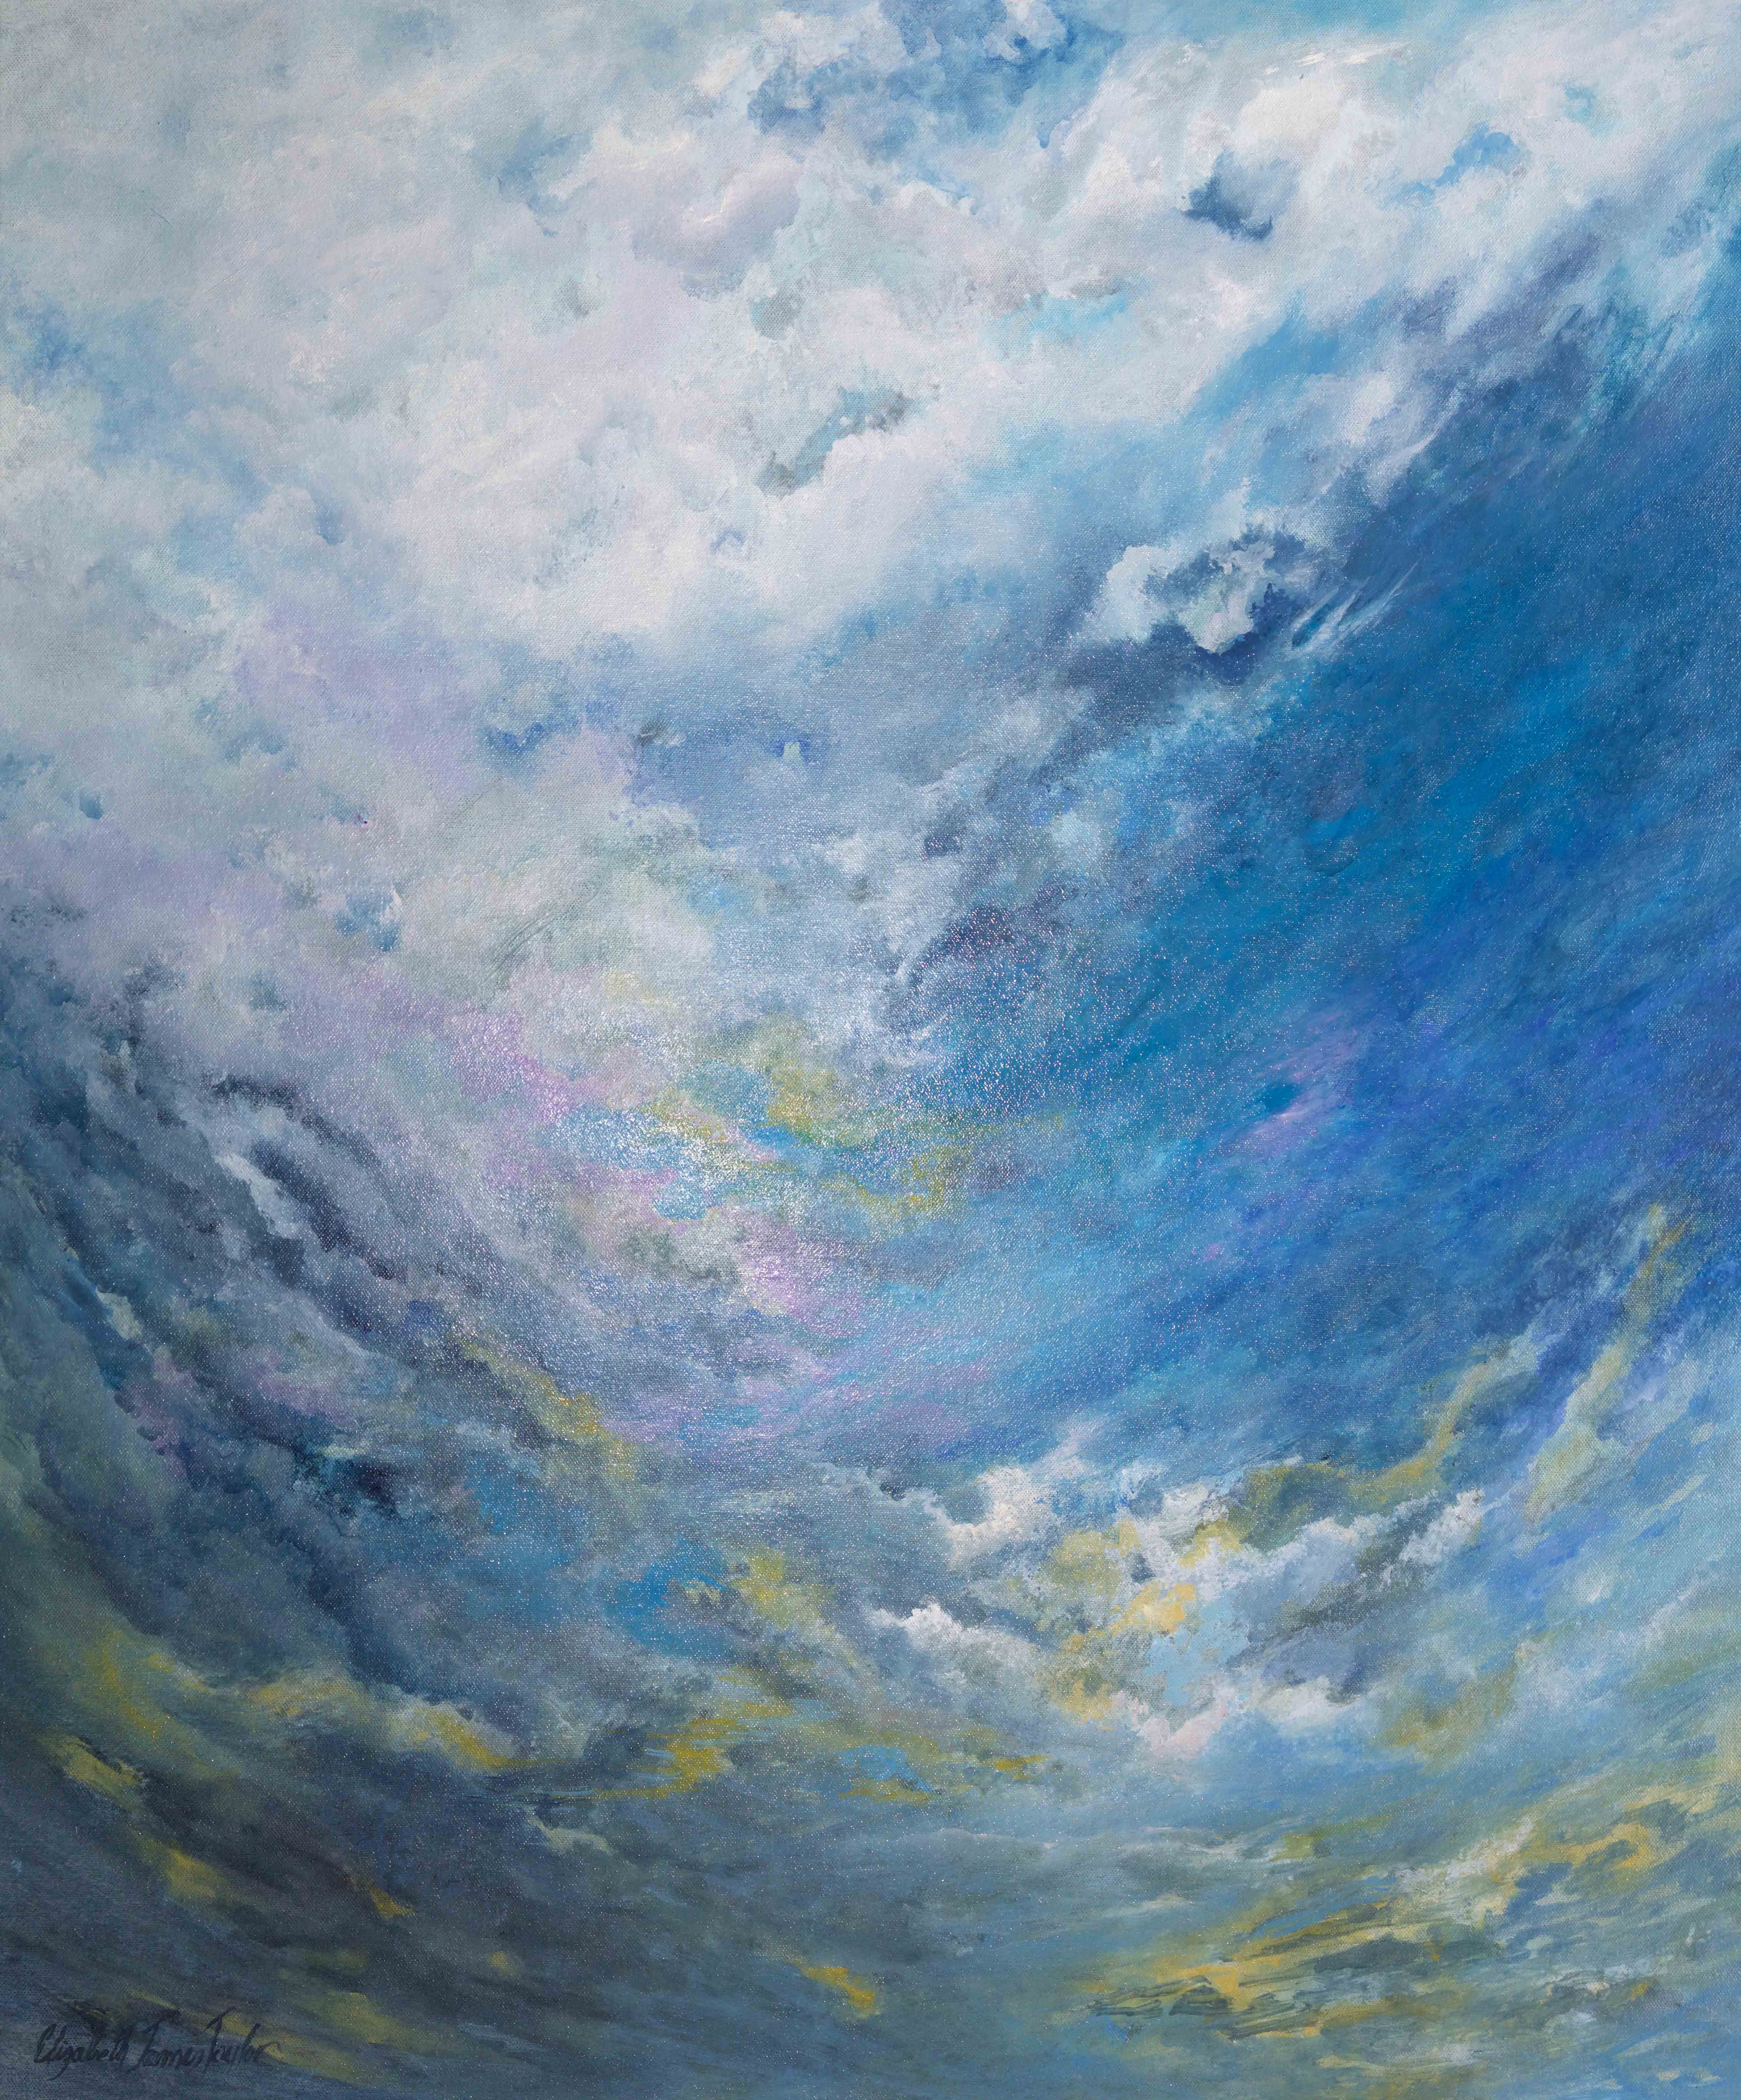 Surfing the Clouds 76 x 91cm oil on canvas